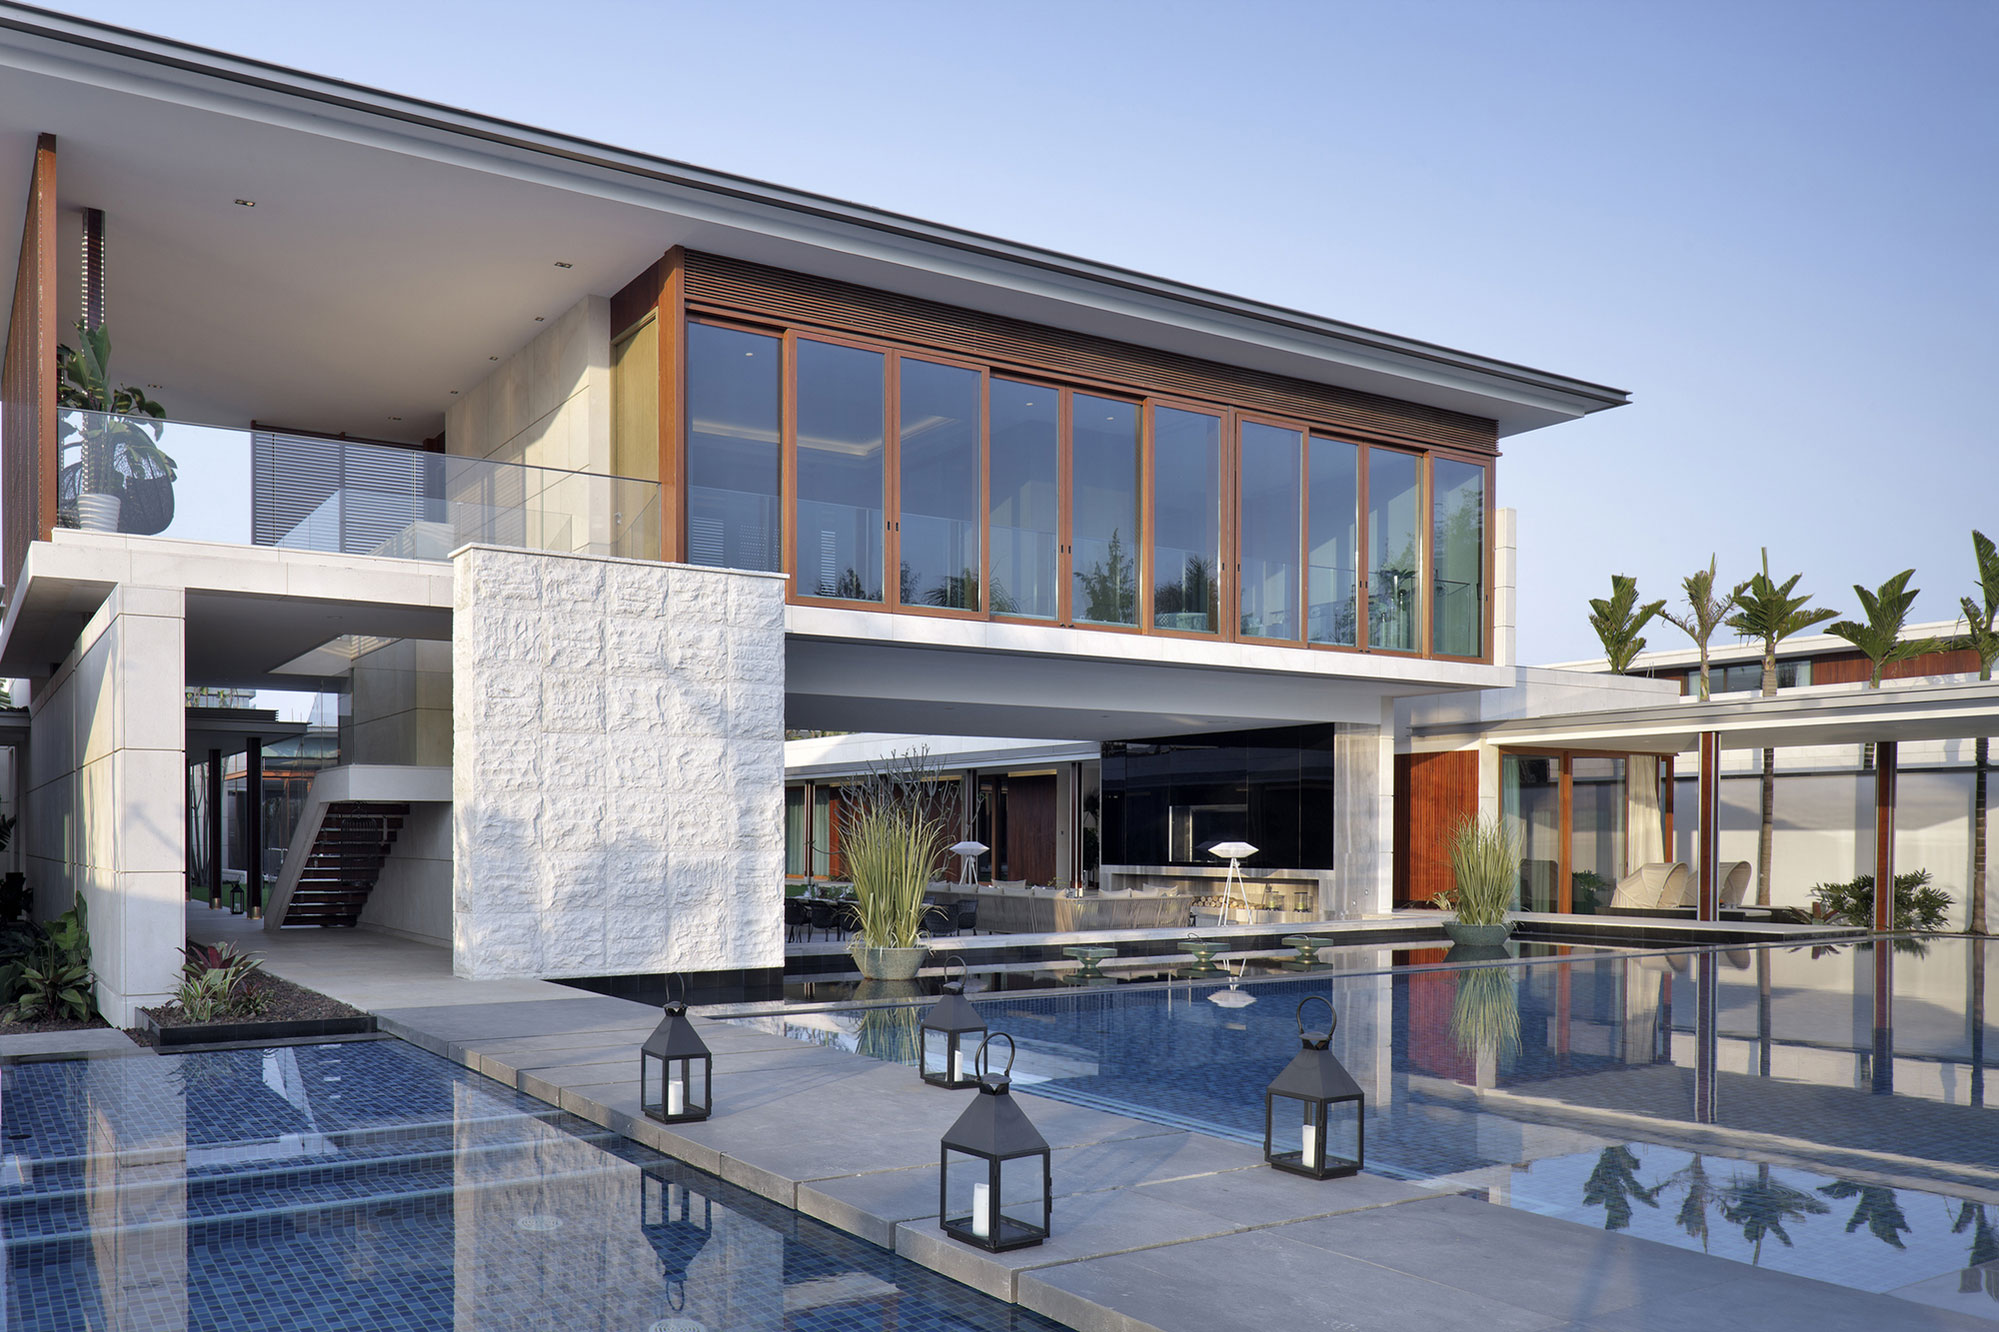 Pool, Bridge, Beachside Villas in Lingshui, Hainan, China